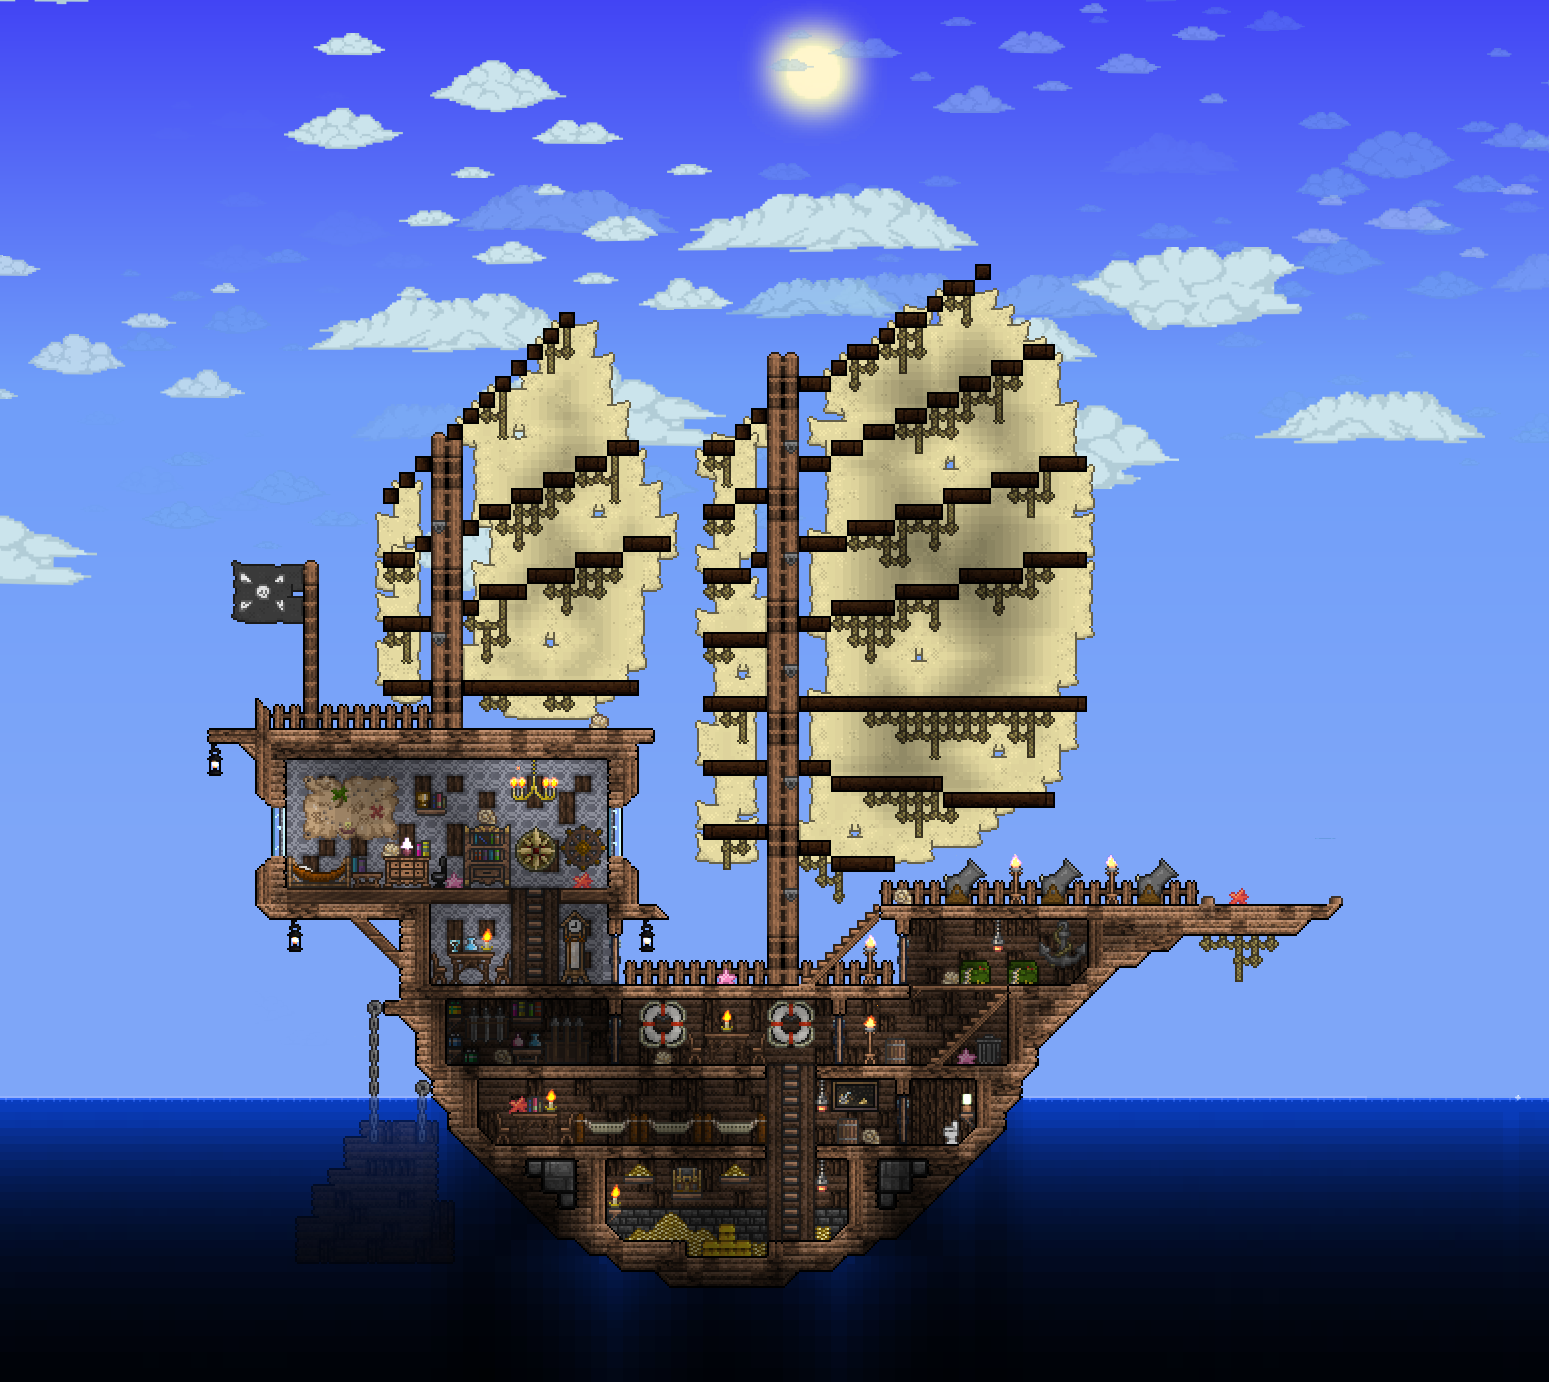 Member Run Contest Win A Copy Of Pixel Piracy Build